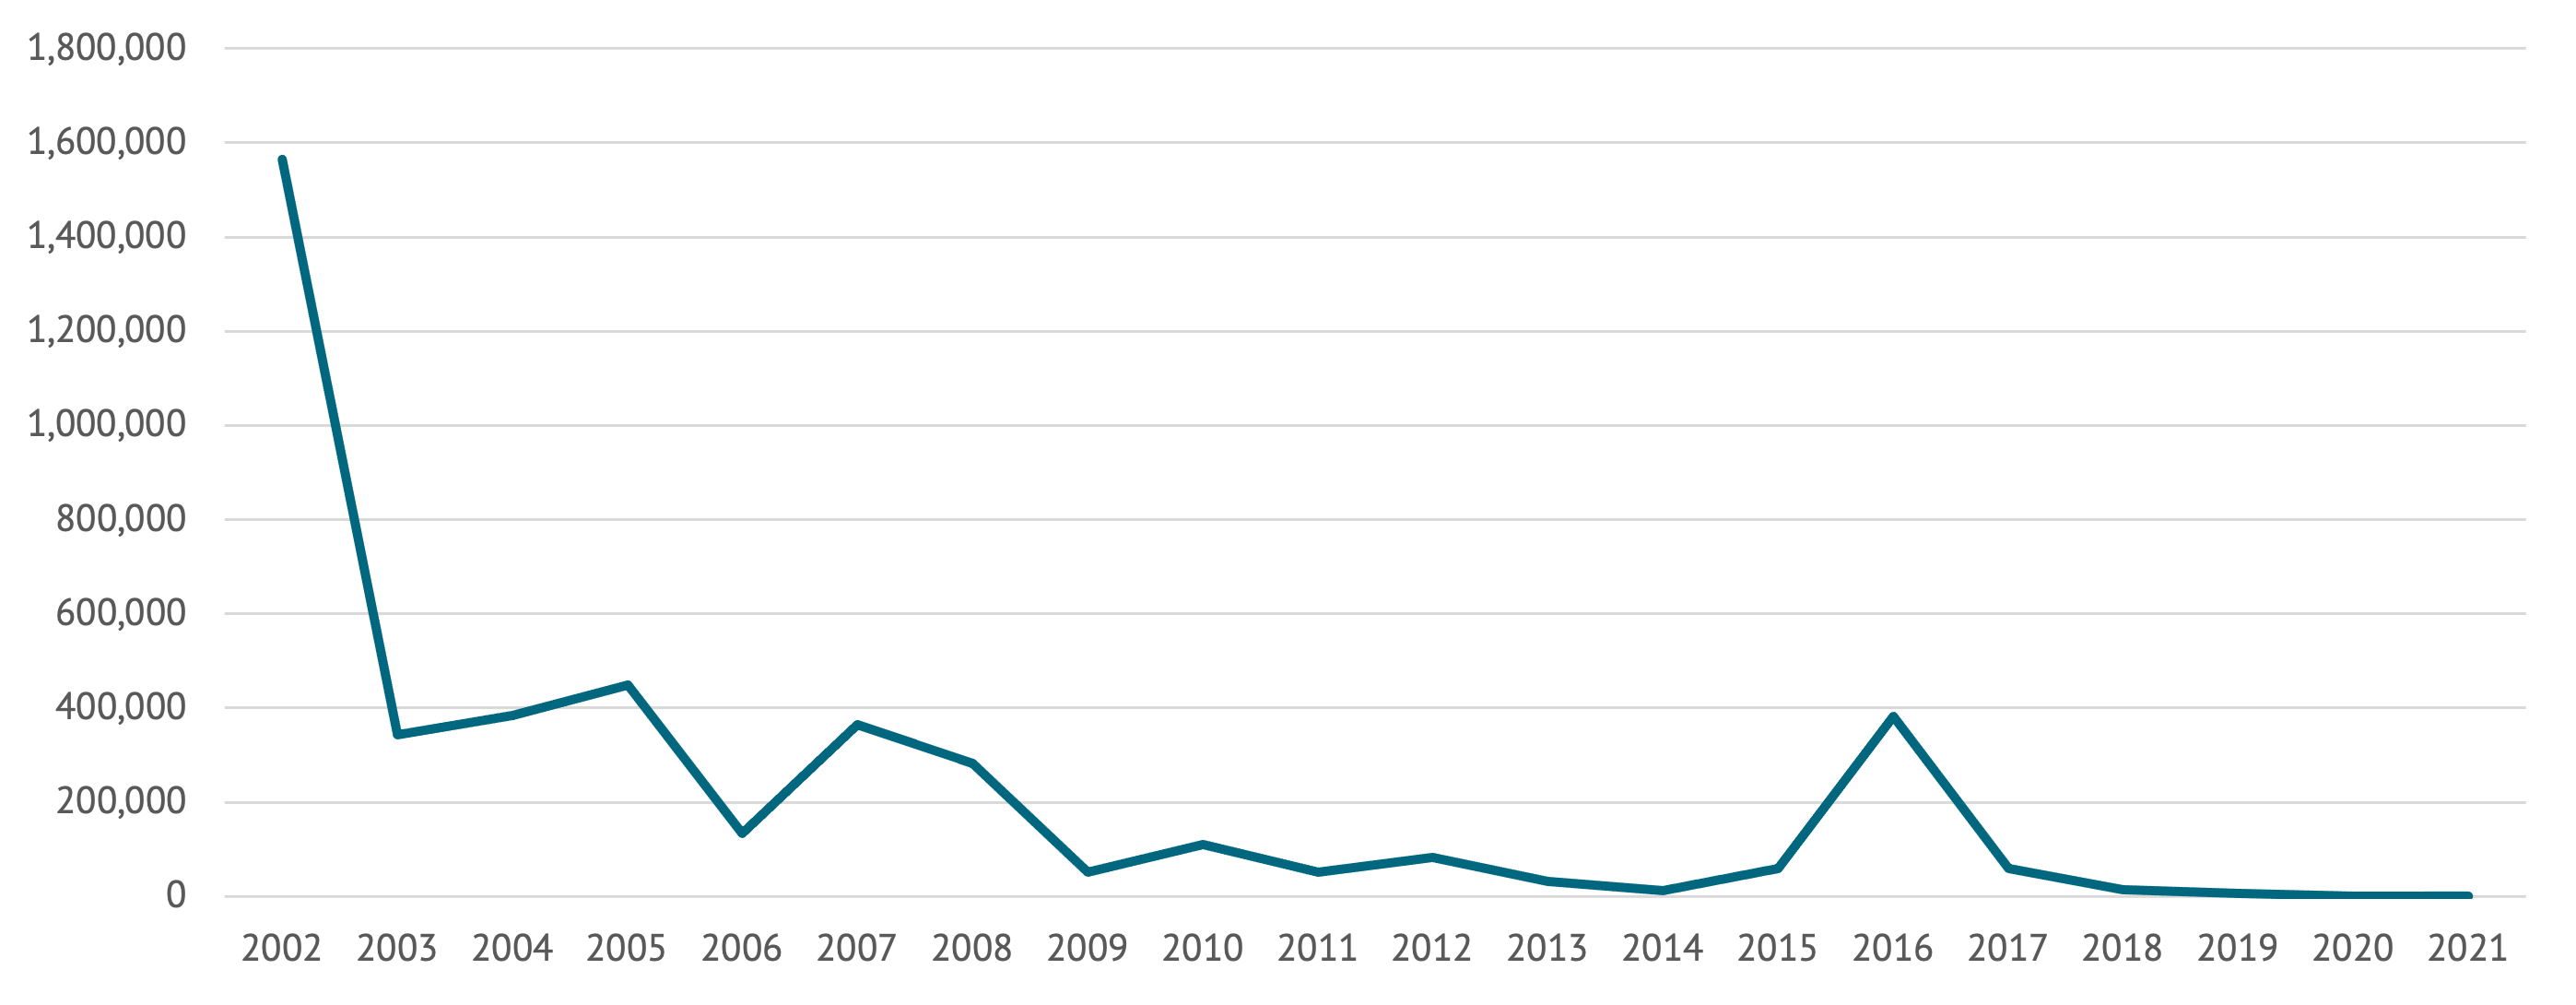 A line chart showing voluntary repatriation of Afghan refugees from Pakistan since 2002.